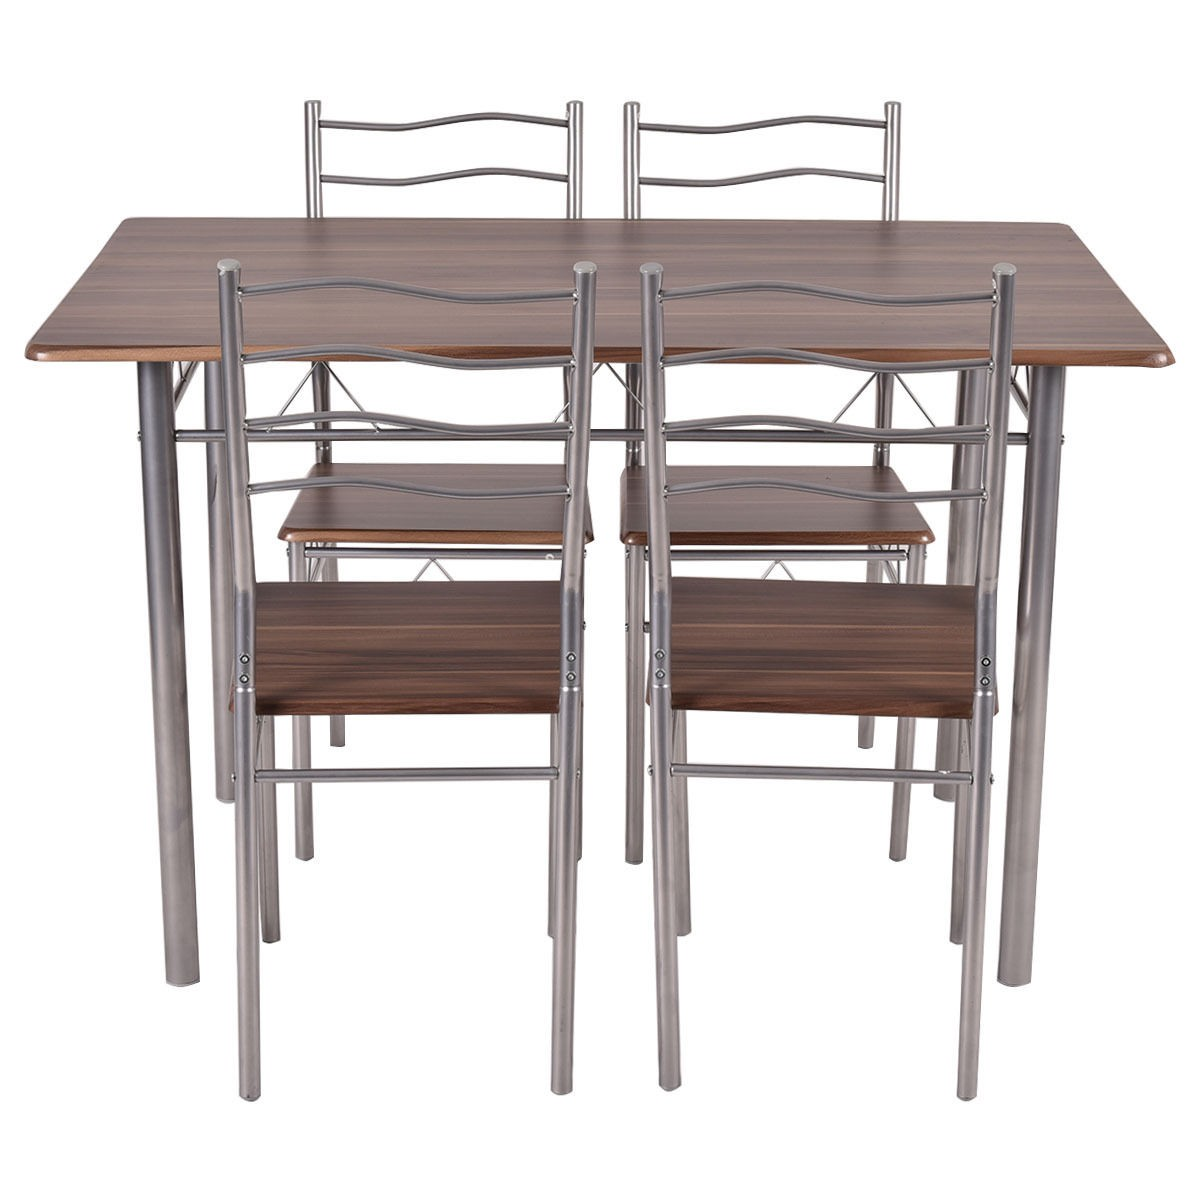 set 5 piece dining wood metal table and 4 chairs kitchen modern furniture ebay. Black Bedroom Furniture Sets. Home Design Ideas